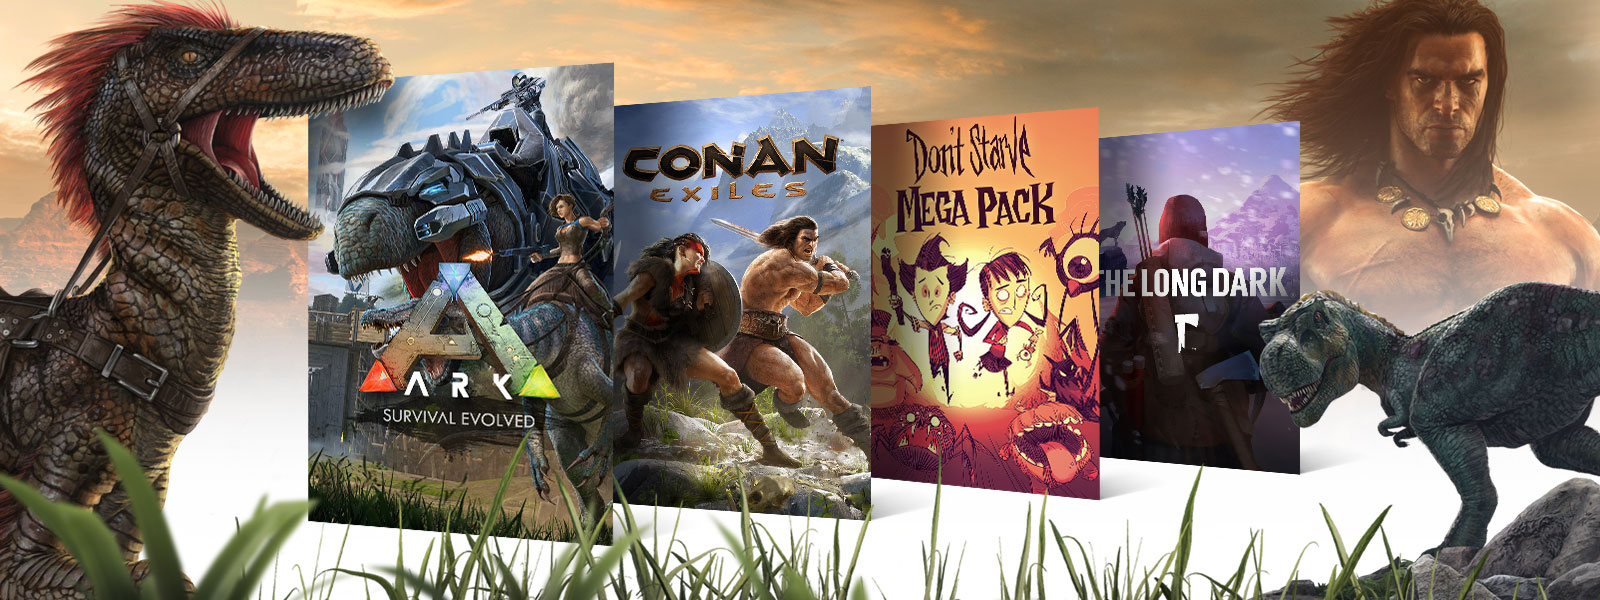 A collage of creatures and box art for Xbox One survival games on sale. ARK: Survival Evolved, Conan Exiles, Don't Starve Mega Pack, The Long Dark.